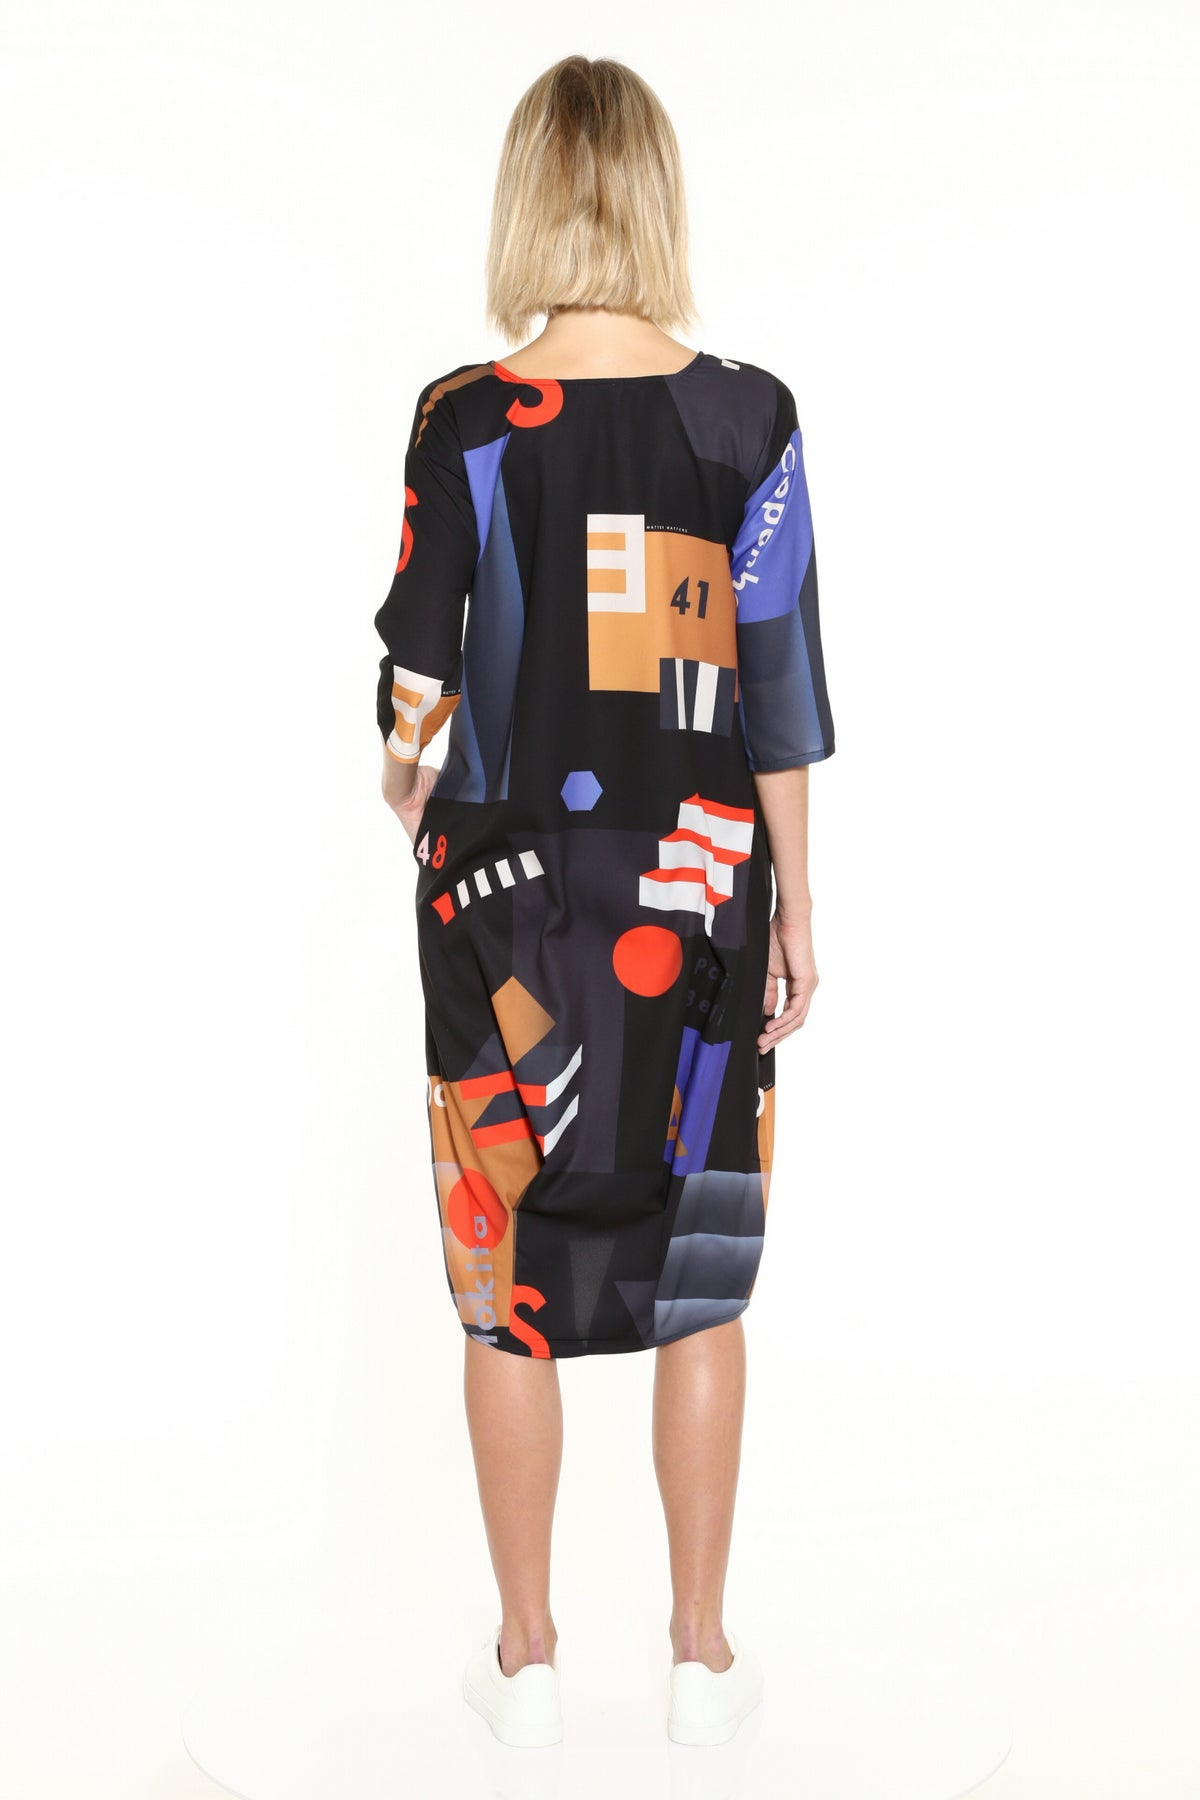 Image of Matter Matters Gallery Midi Summer Dress - Mokita Black